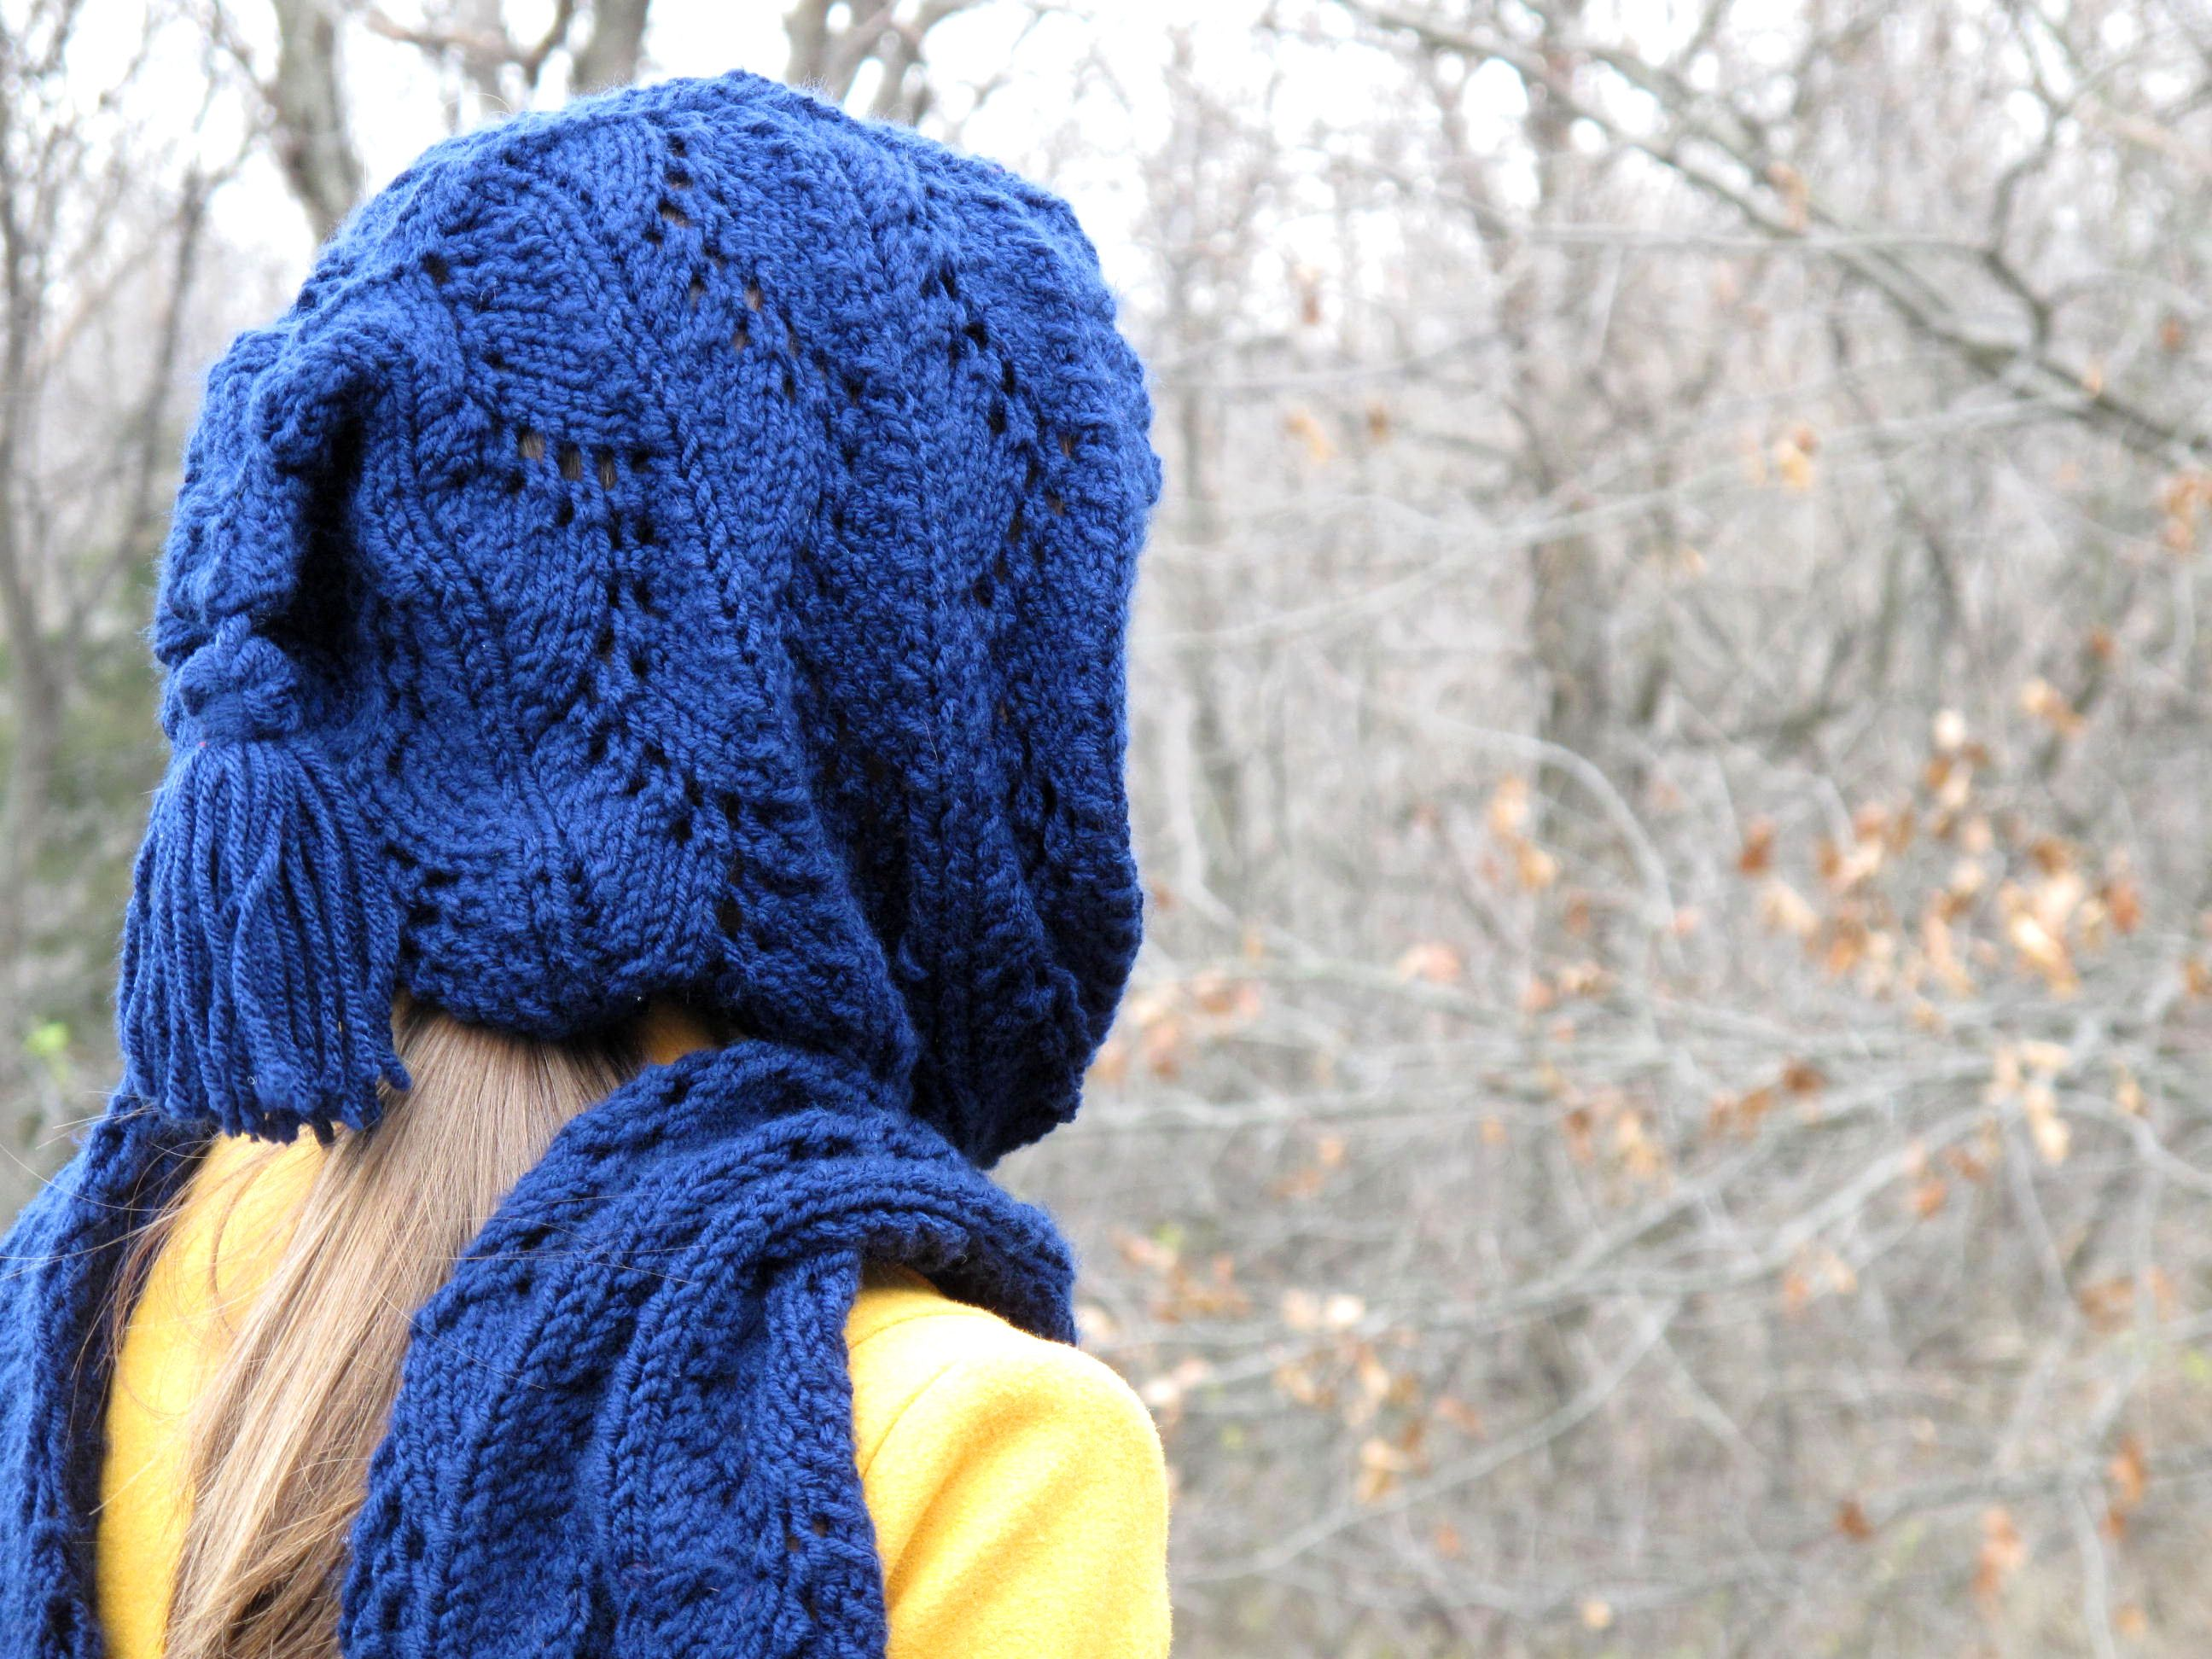 14 Hooded Scarf Knitting Pattern - The Funky Stitch